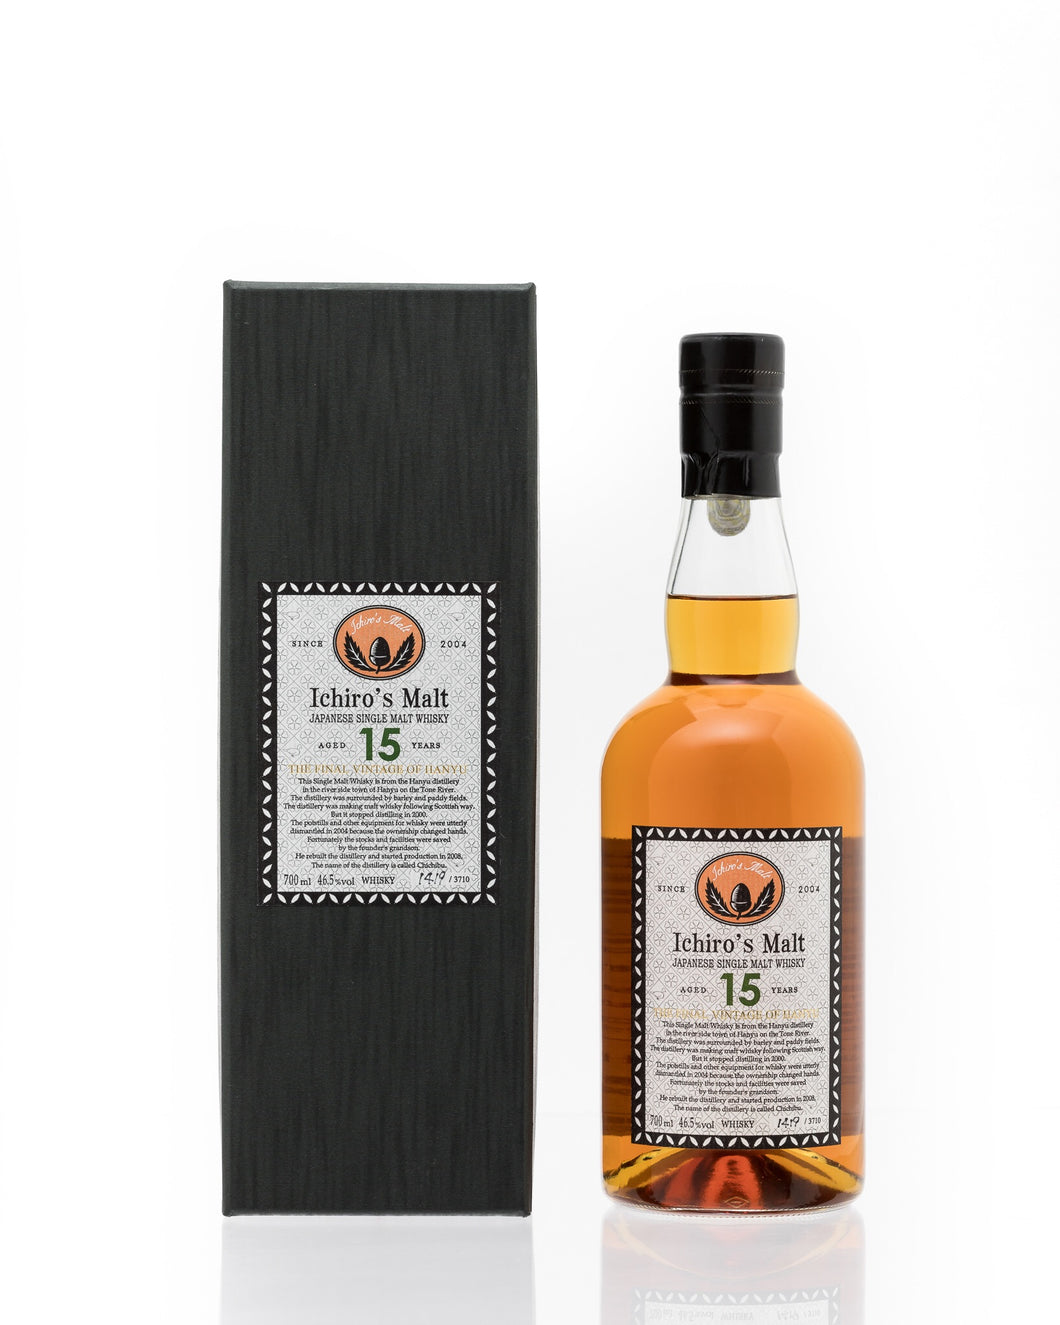 Ichiros Malt 15 year Old The Final Vintage Of Hanyu